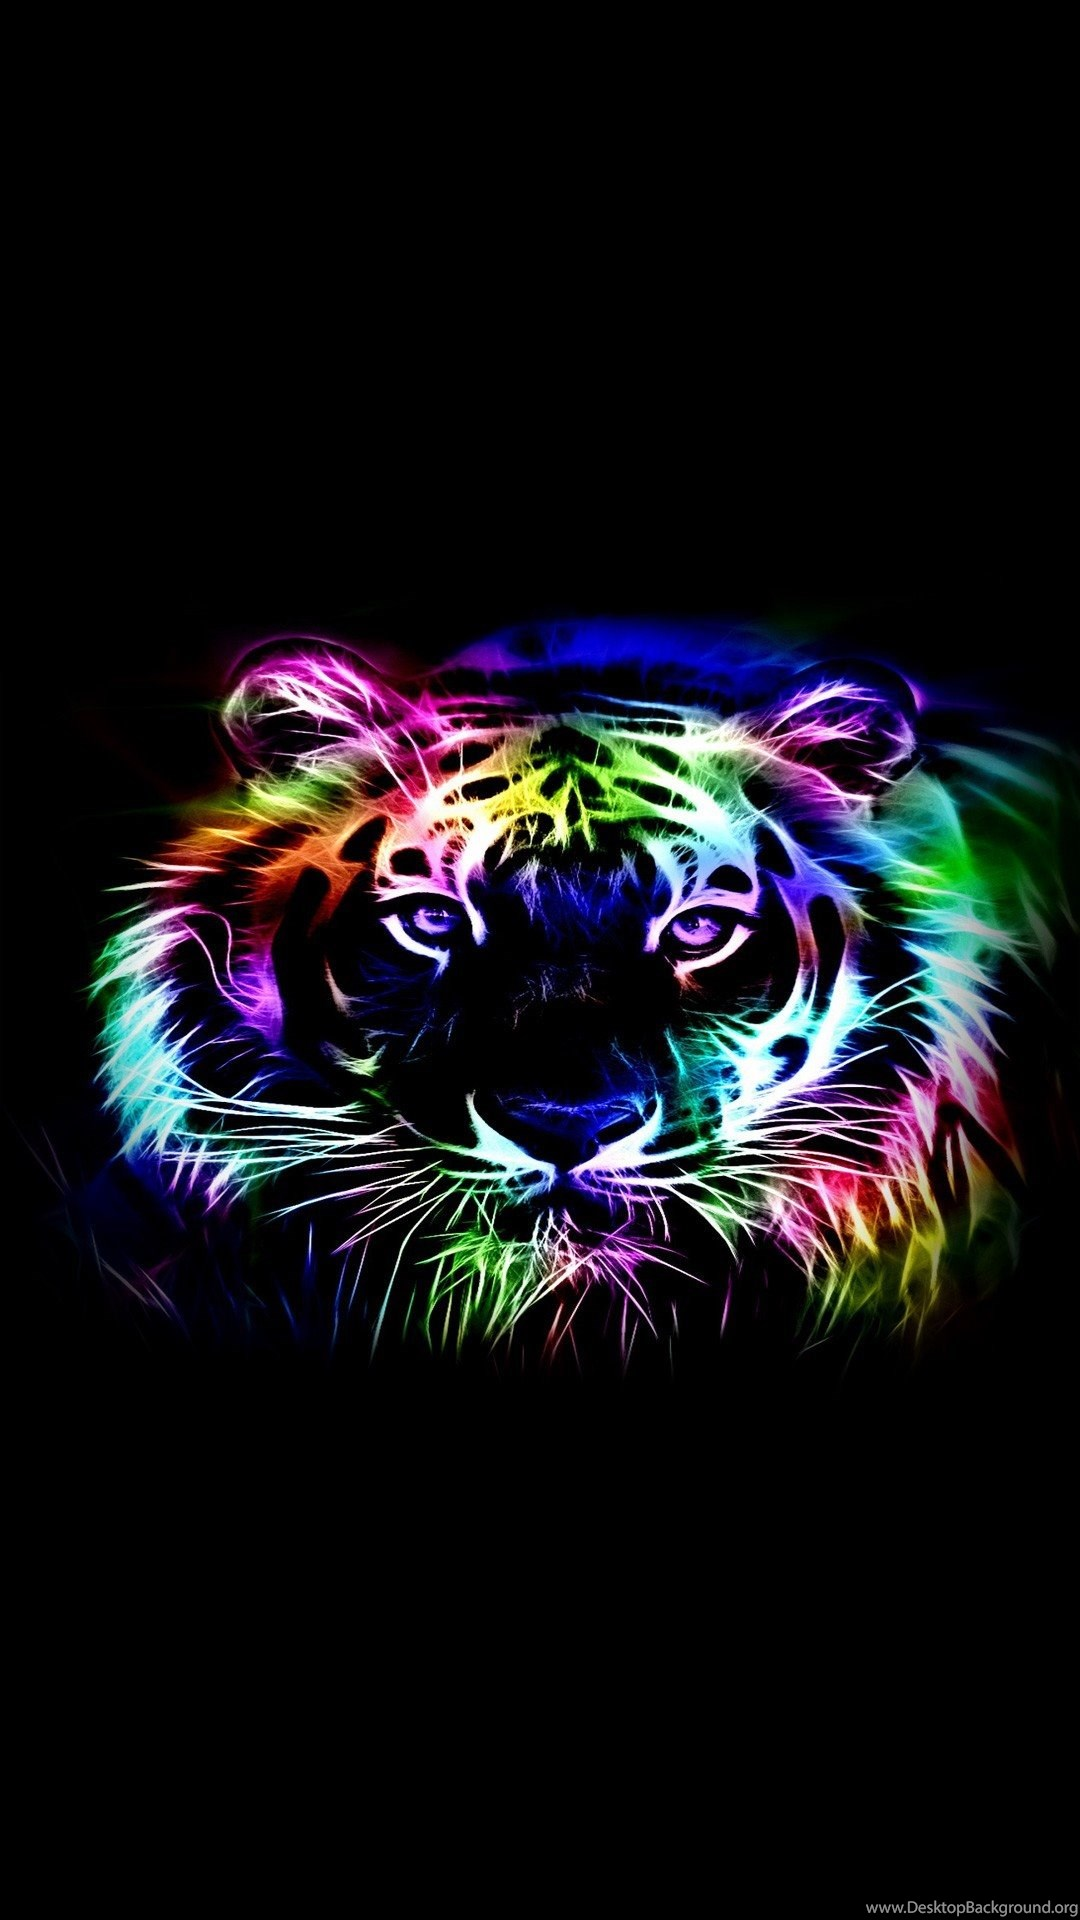 Tiger Wallpapers For Mobile Iphone 6 Plus Wallpapers Desktop Background